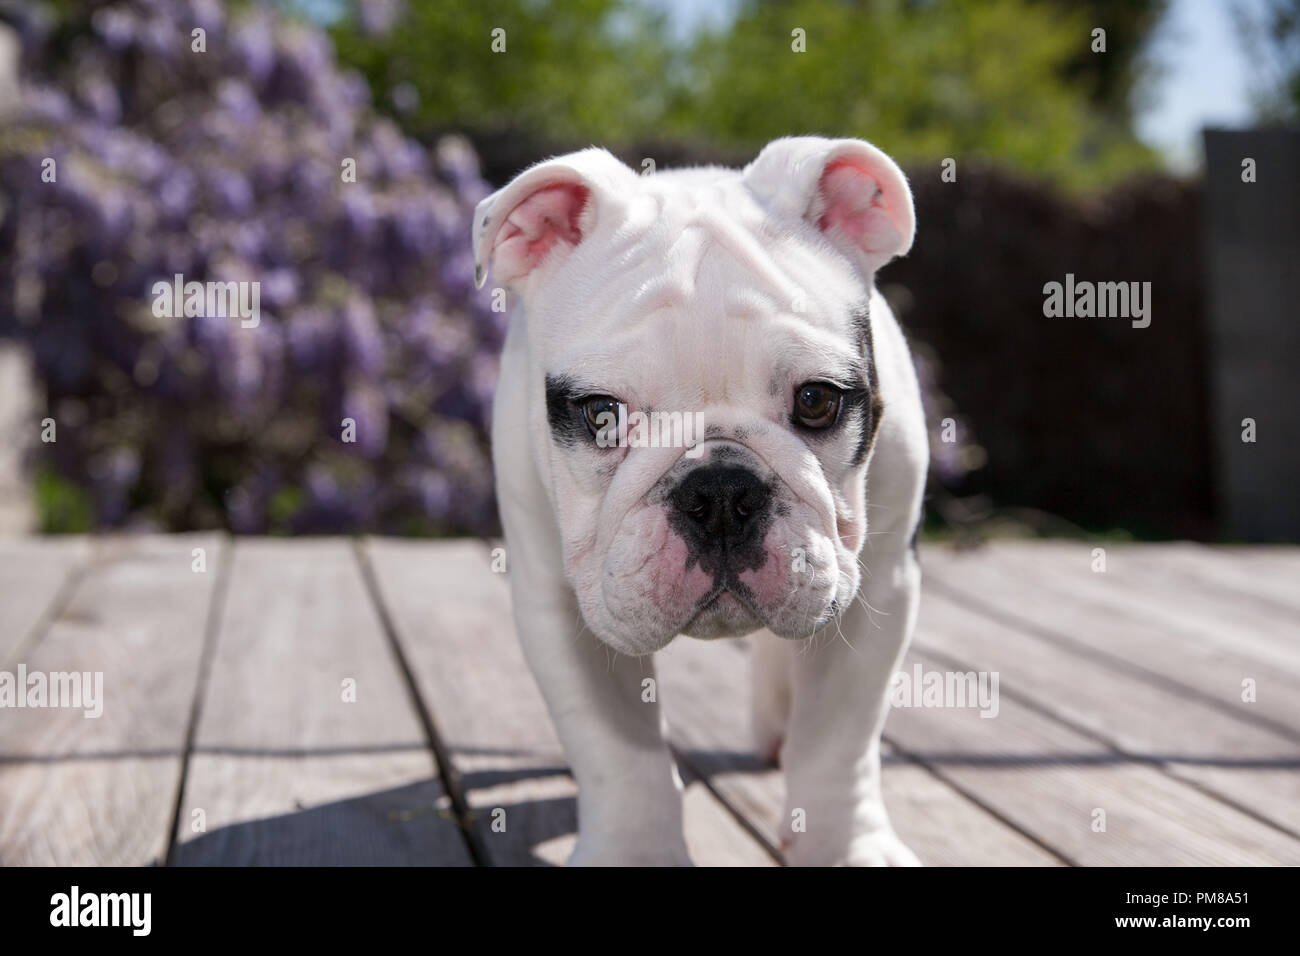 black & white baby bulldog puppy dog on deck standing forward looking as if he has been punished. Stock Photo